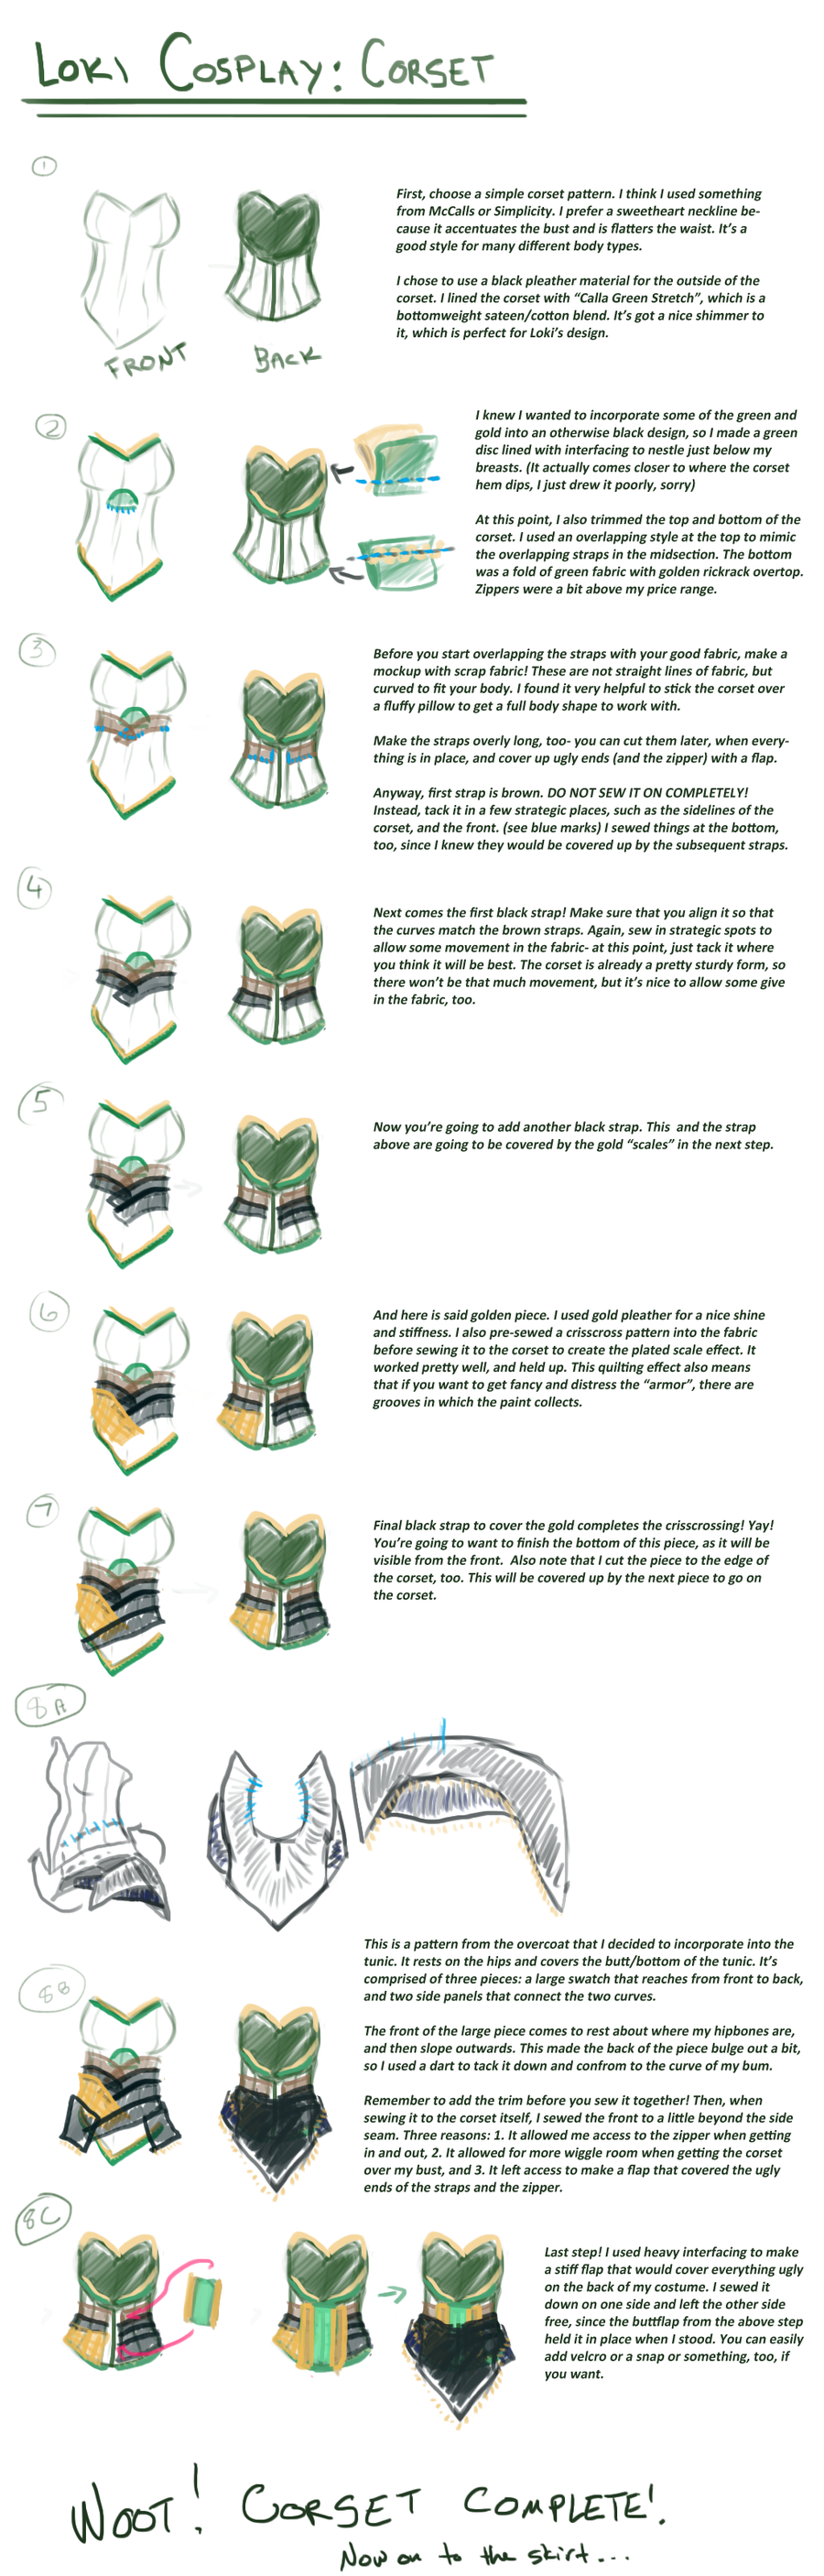 Loki cosplay guide: Corset by SirLadySketch